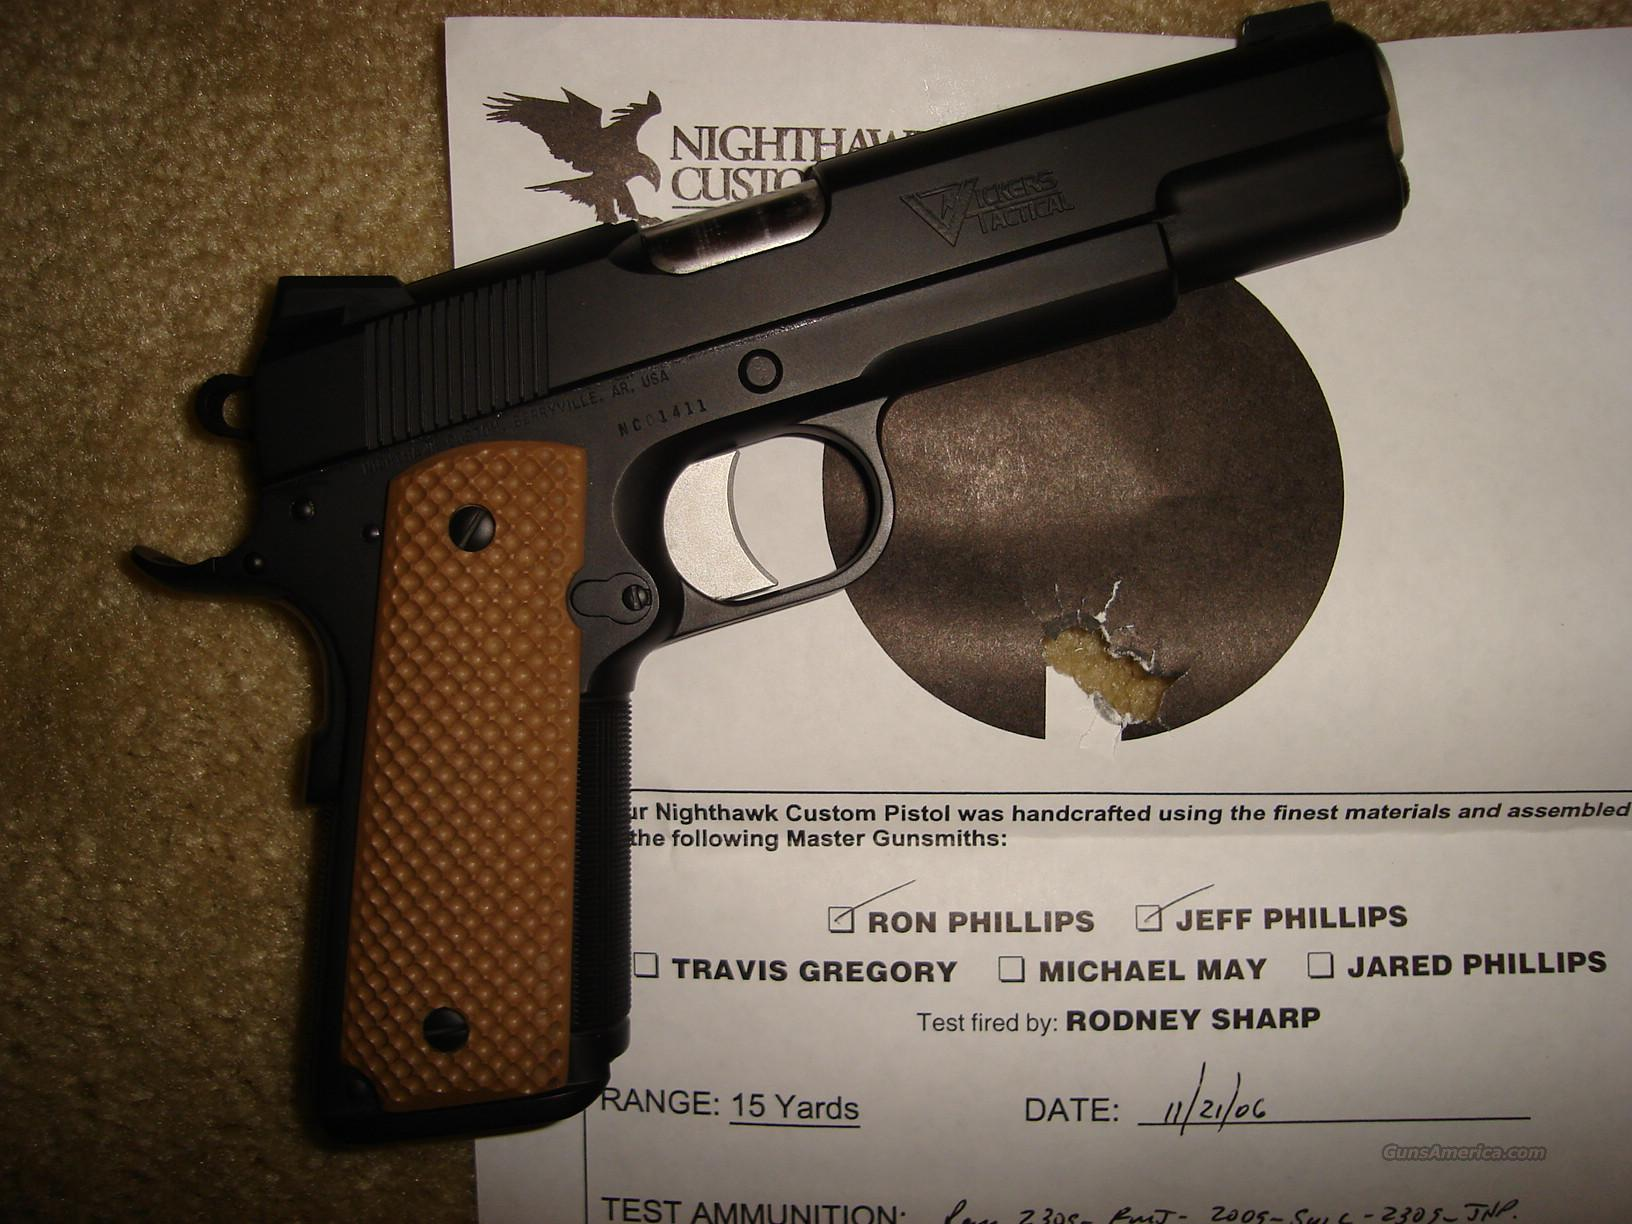 Nighthawk Vickers Tactical 1911  Guns > Pistols > 1911 Pistol Copies (non-Colt)